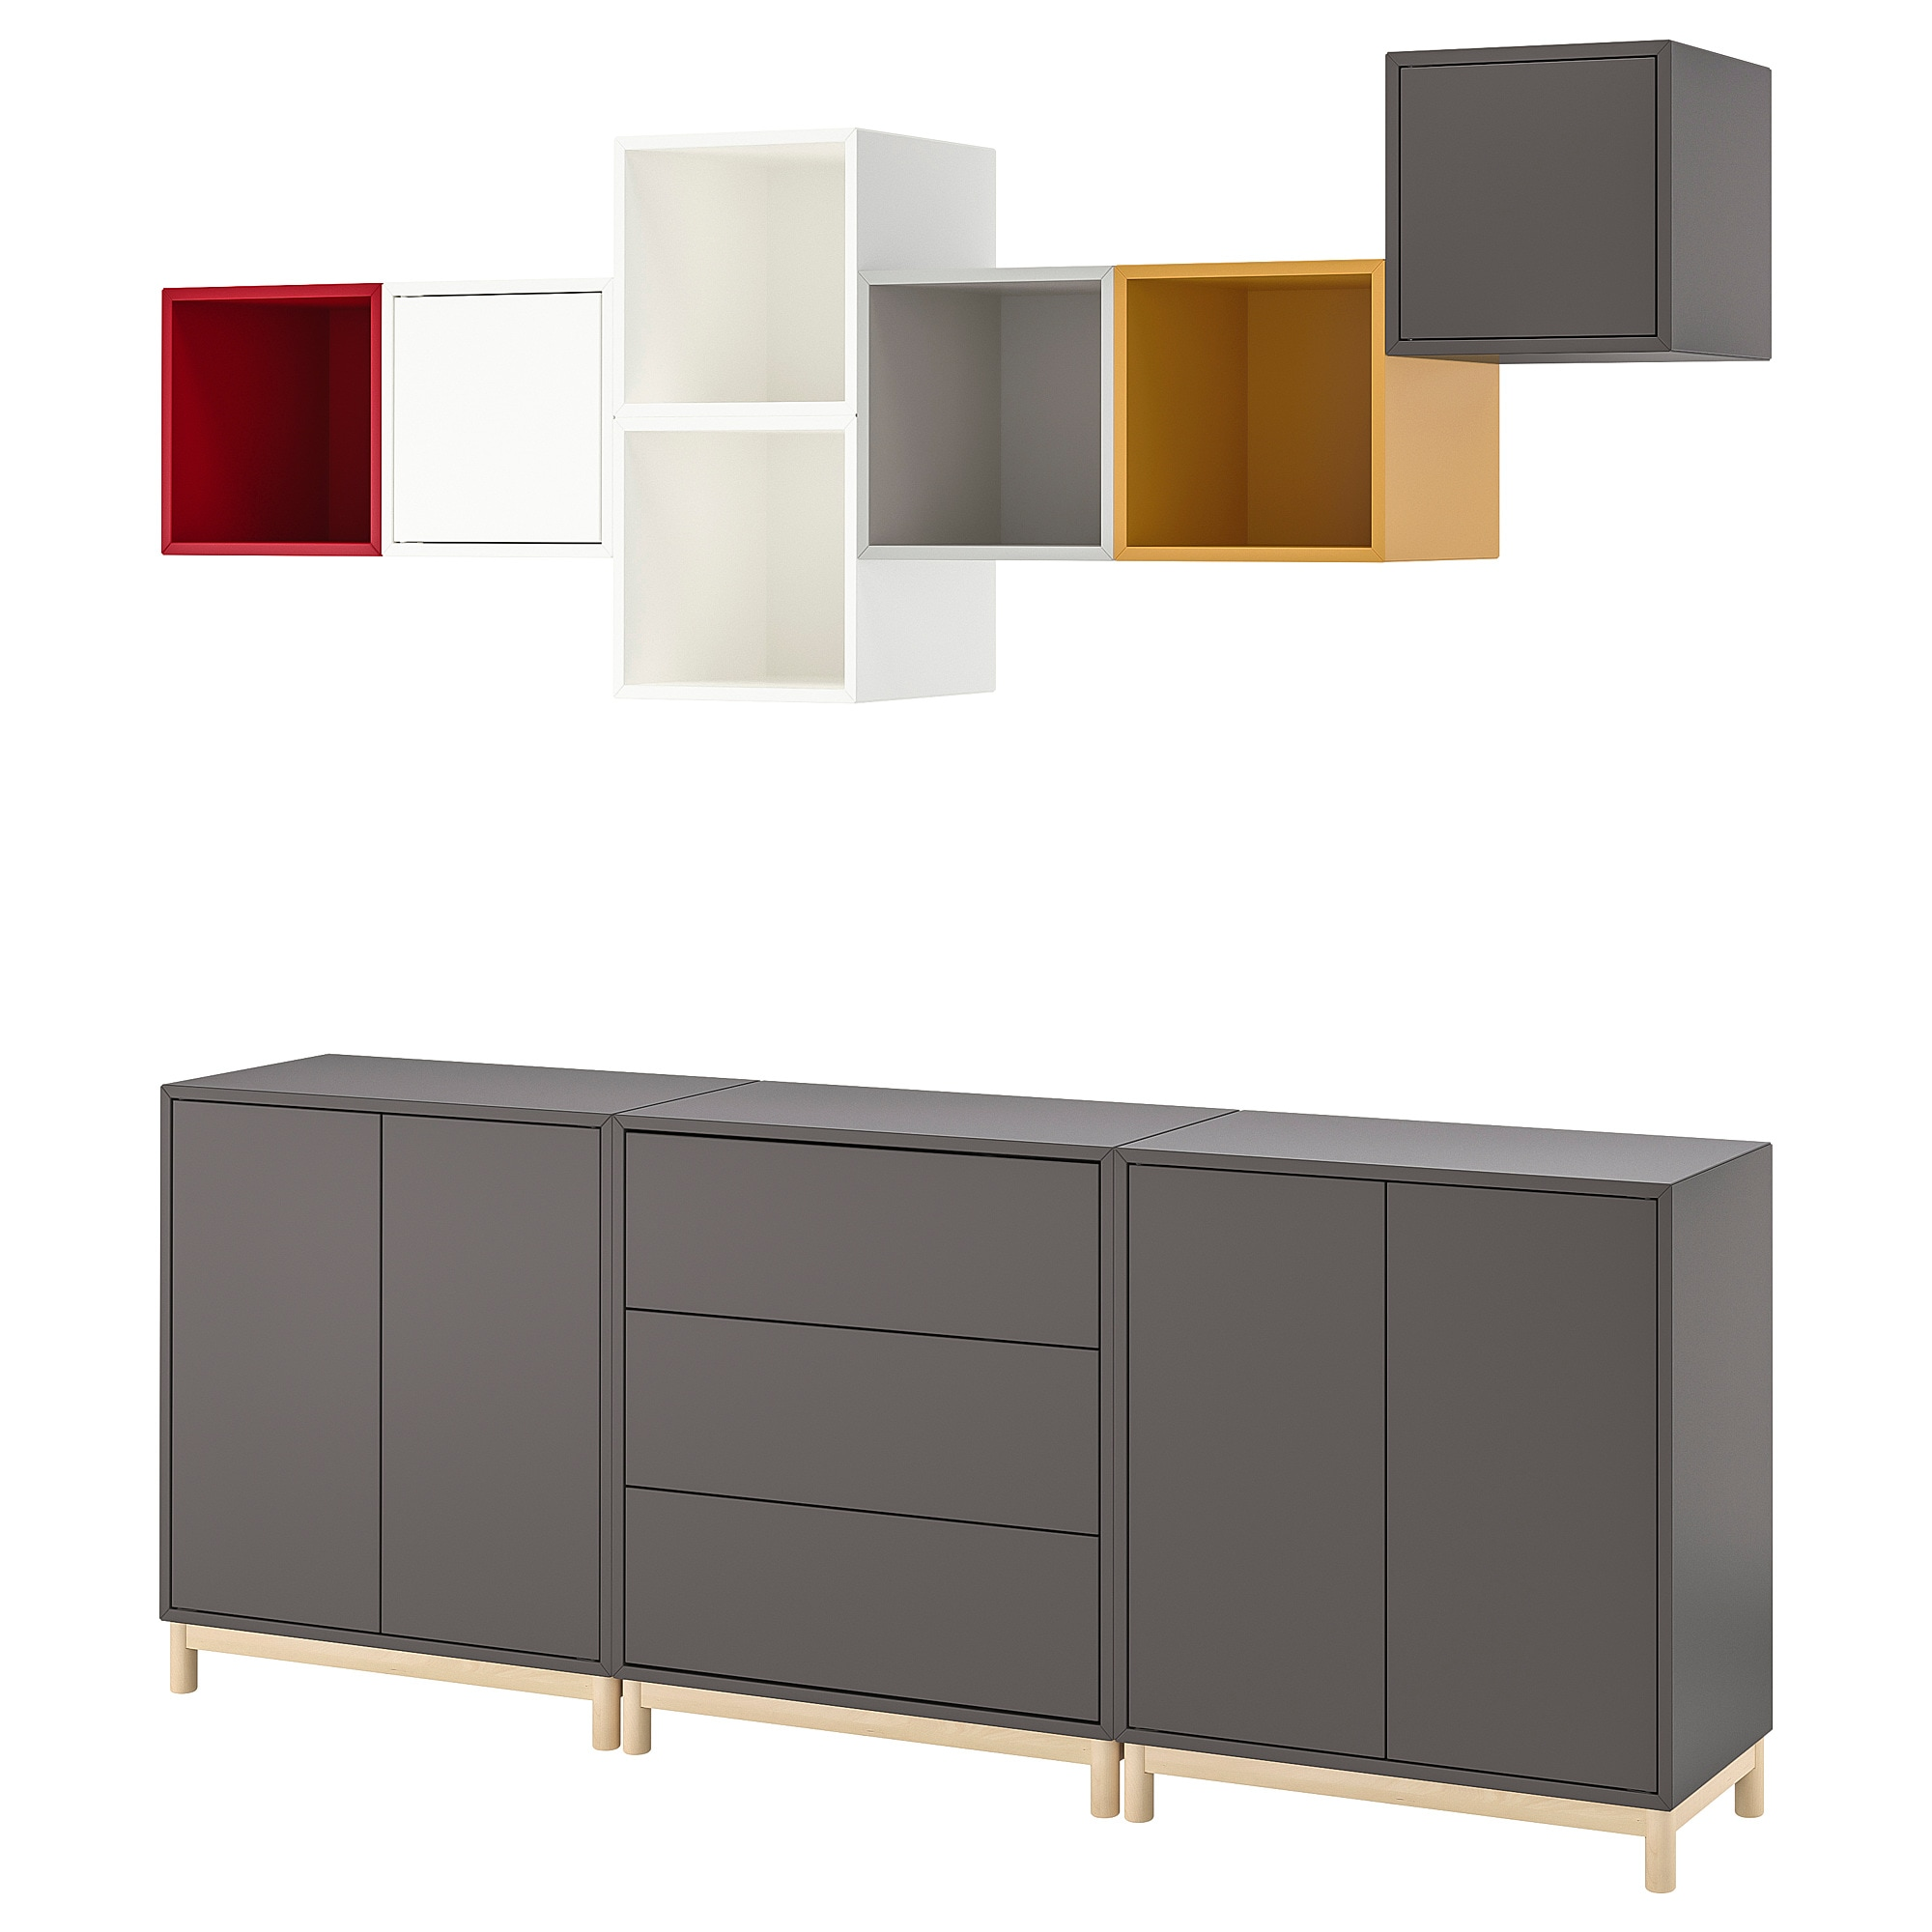 Eket Cabinet Combination With Legs Multicolour 1 Ikea